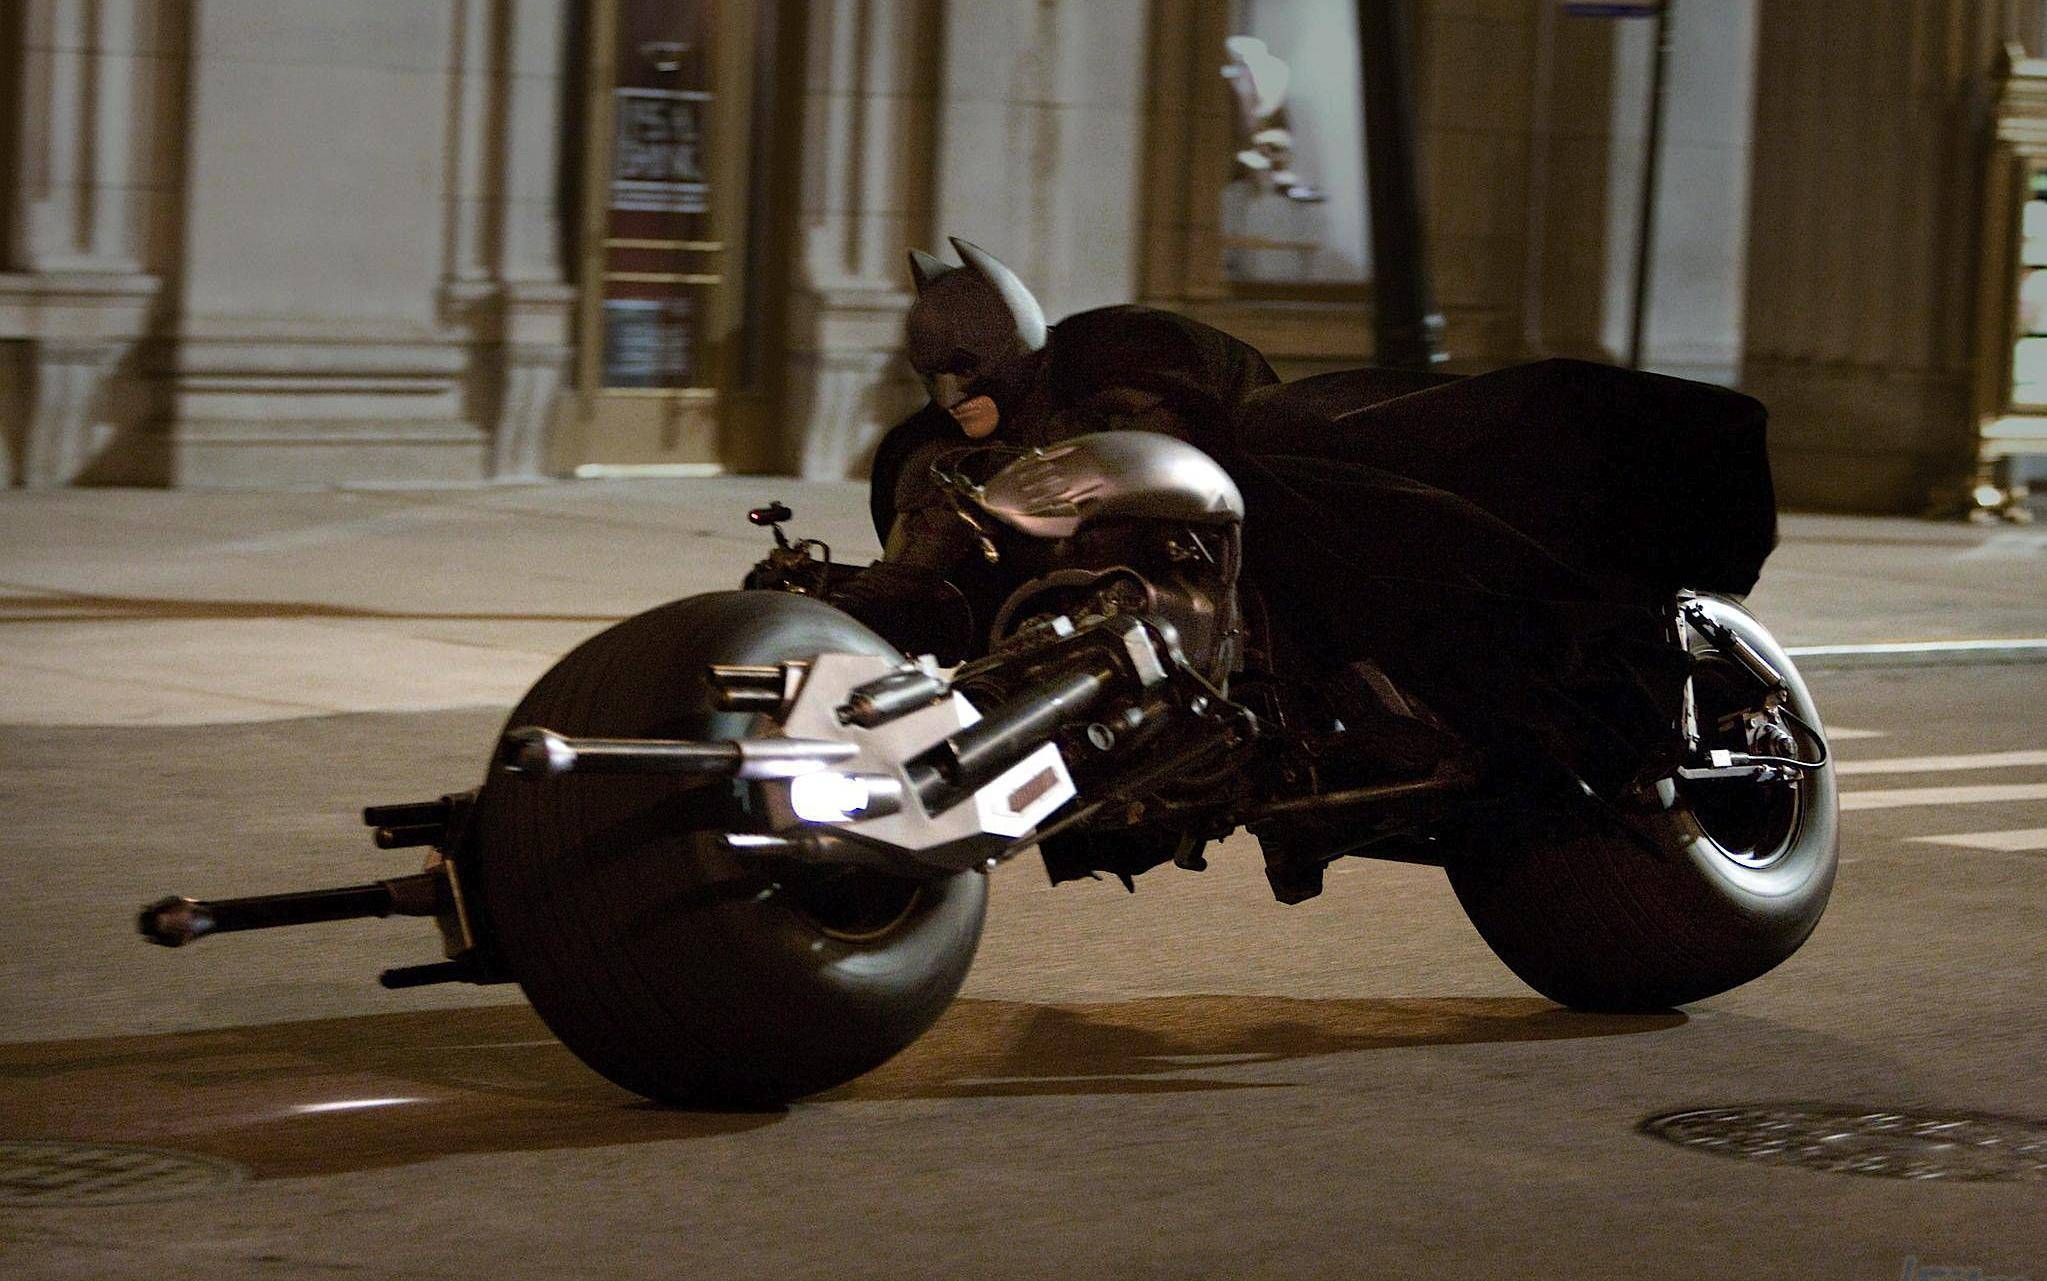 The front of the newest Batmobile can convert into the Batcycle